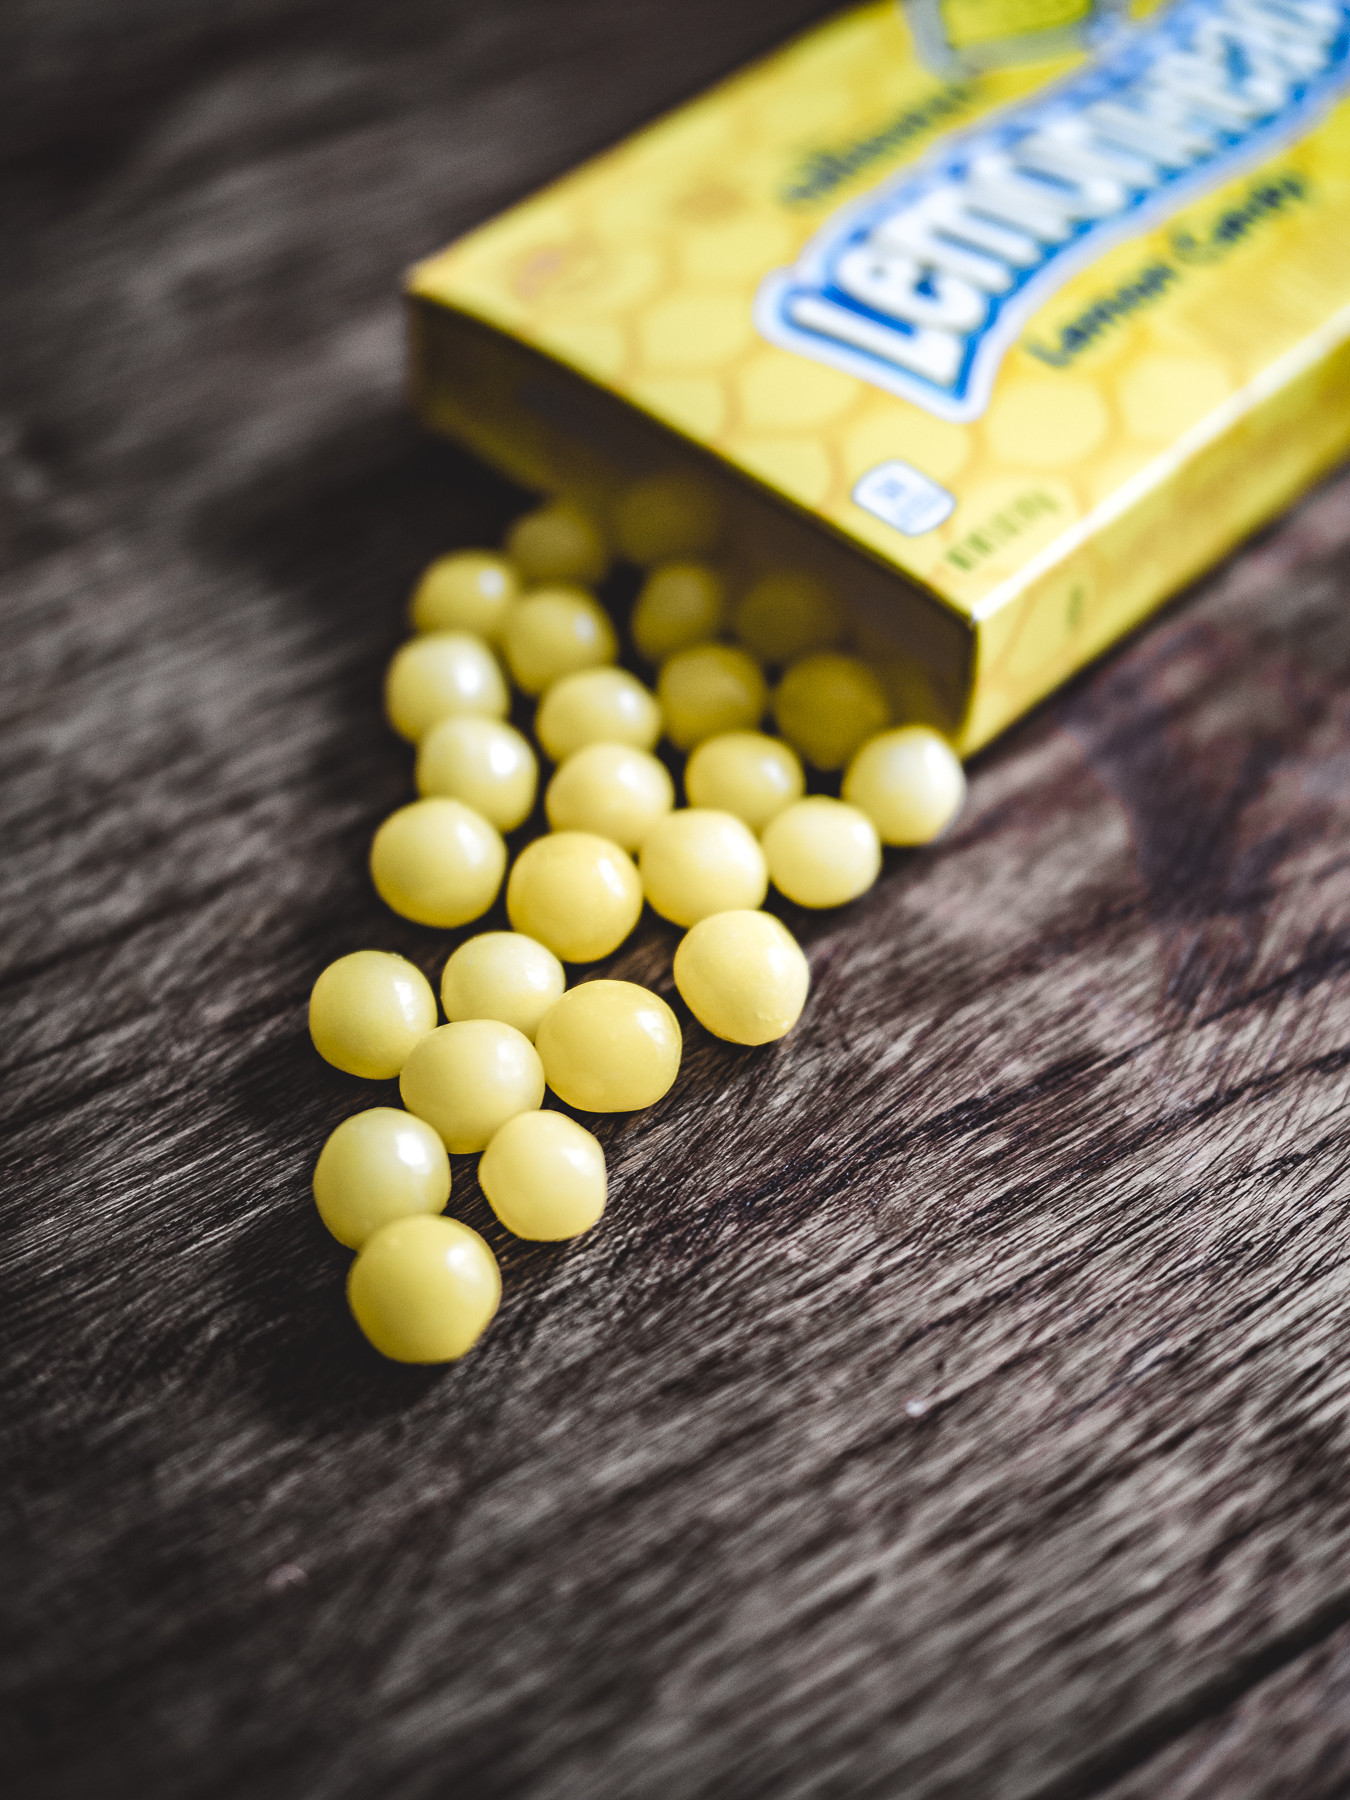 Lemonheads Review